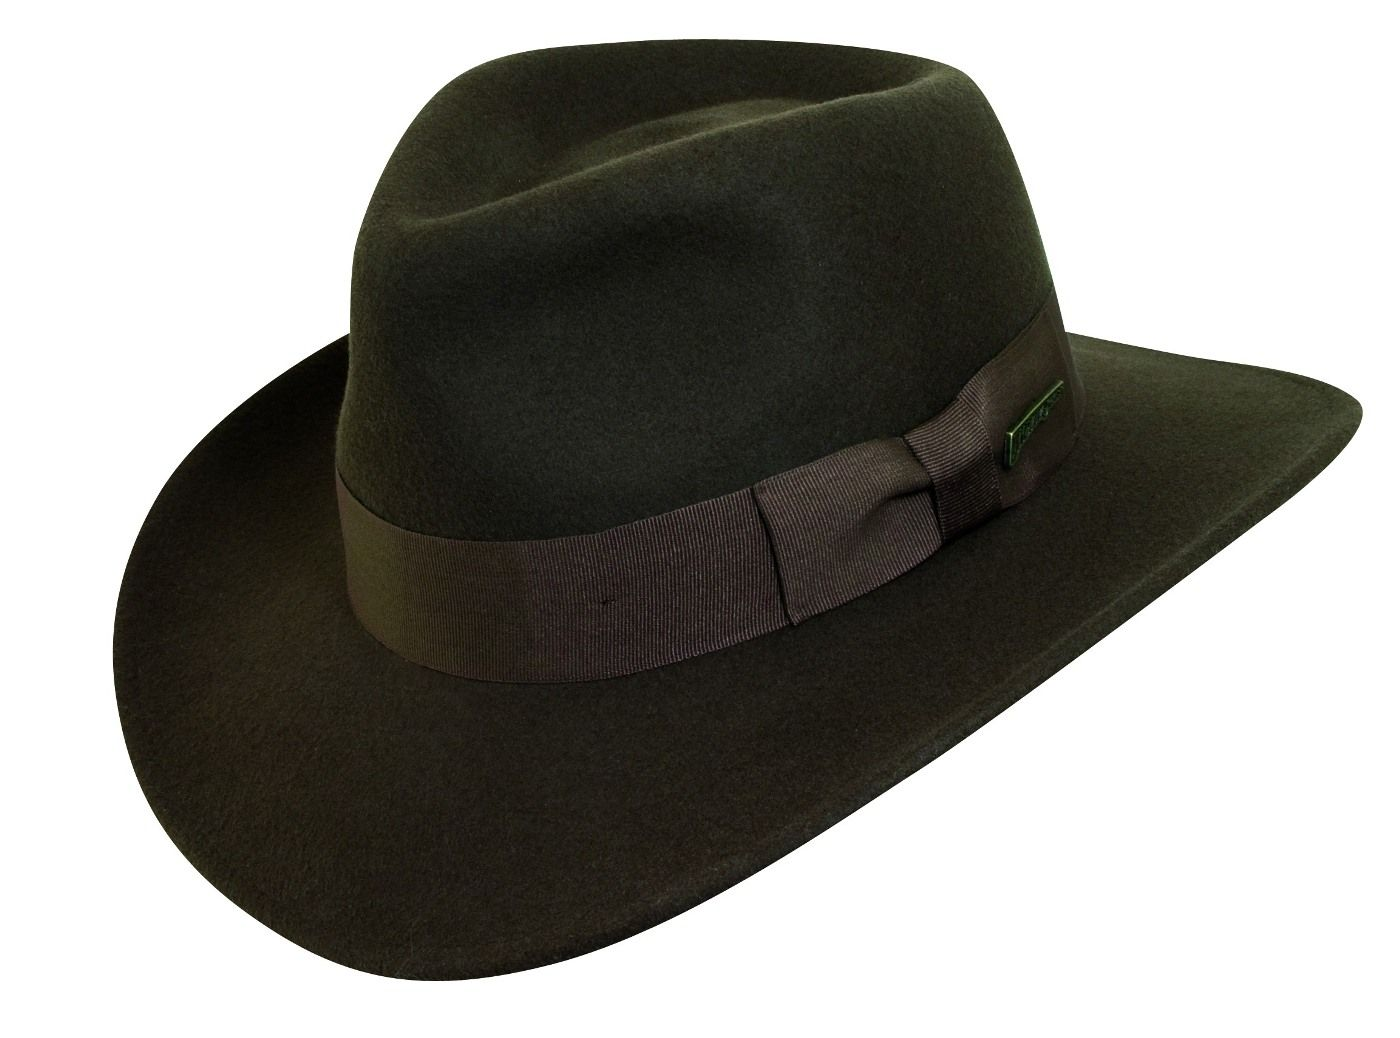 0b0edc04f0dab This Indiana Jones hat exemplifies the adventurous attitude of the  enterprising hero that inspired it. This 100% wool felt hat features the  name Indiana ...